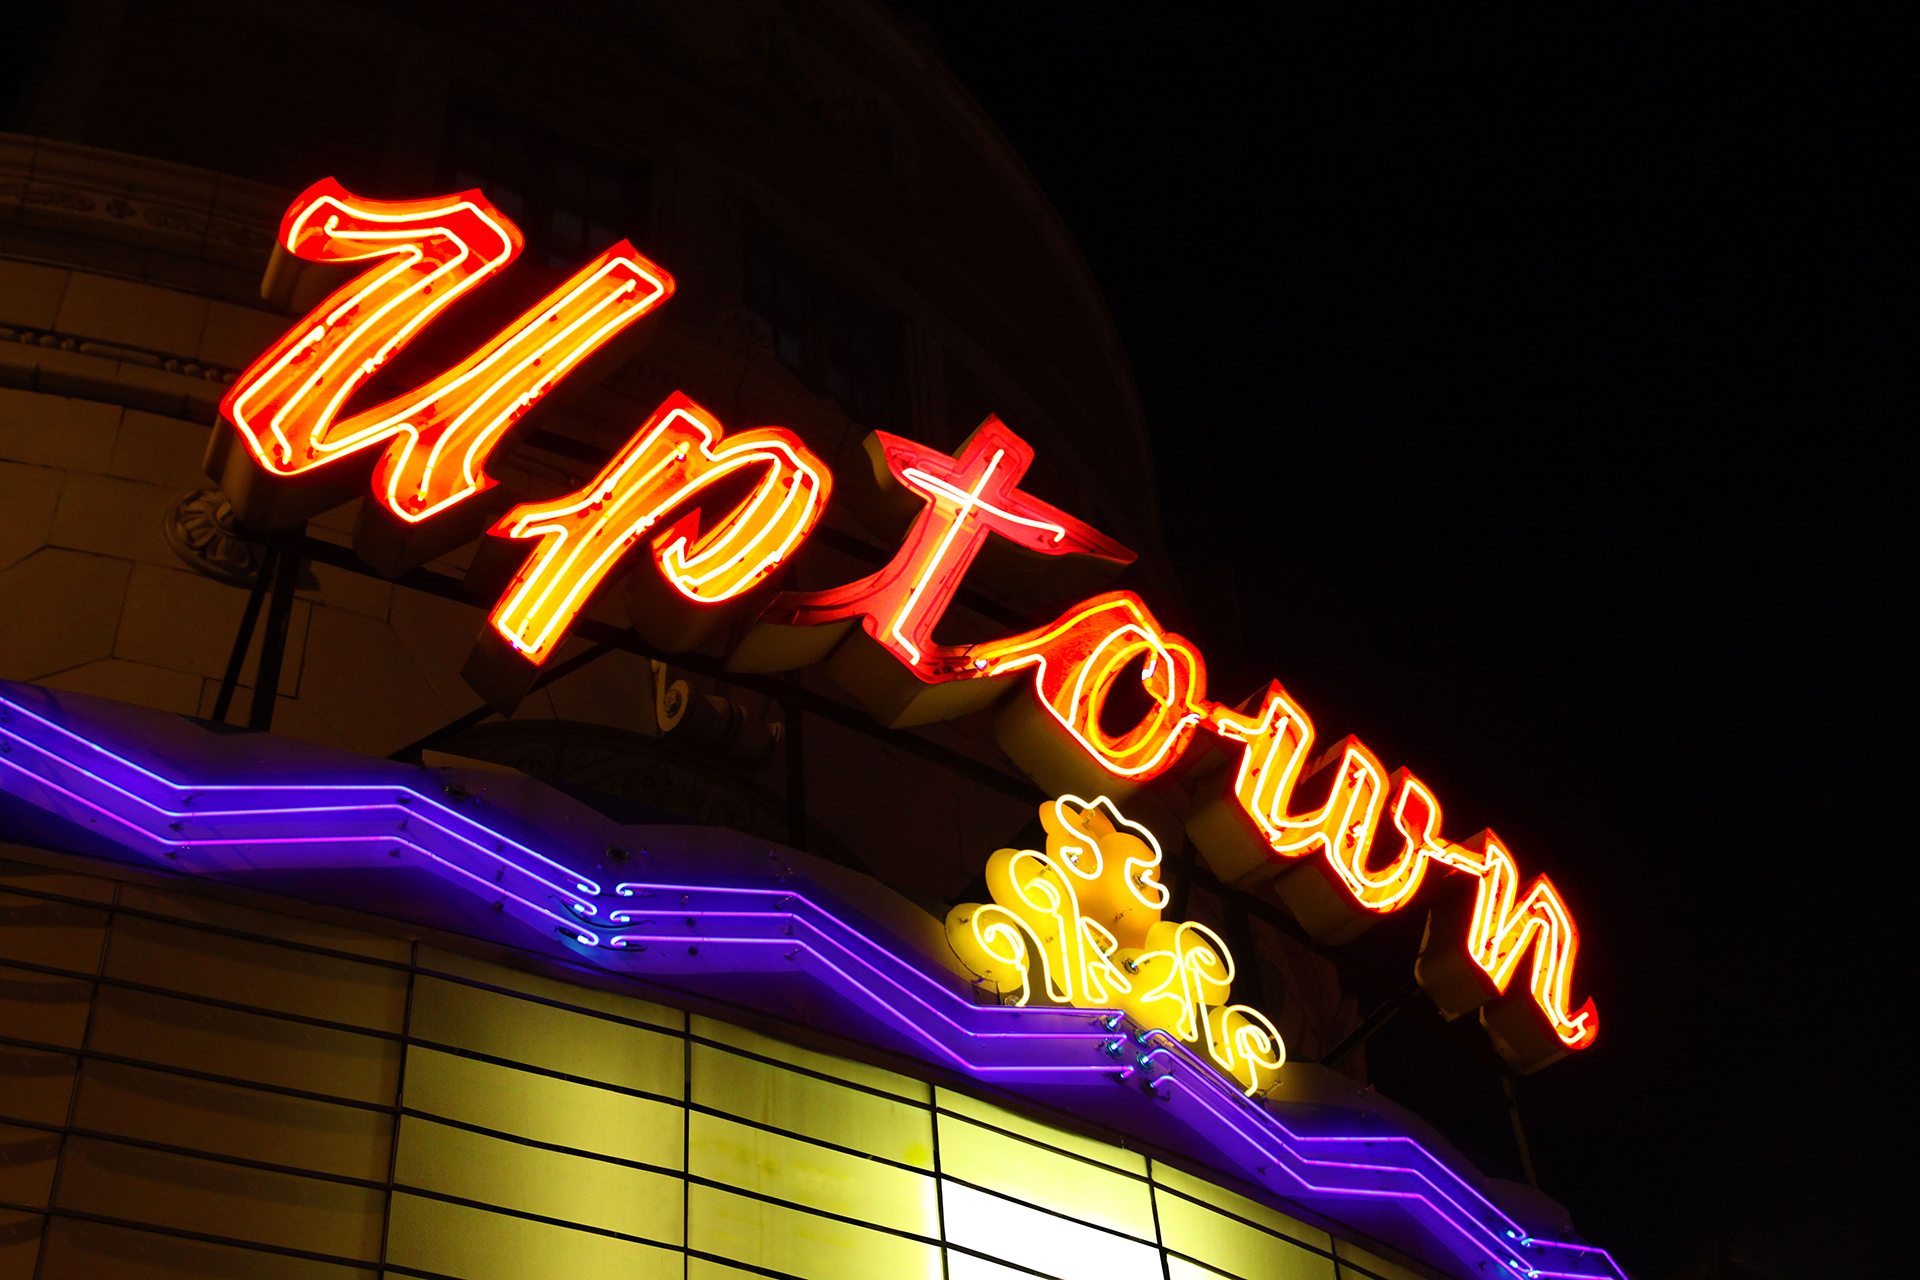 Conveniently located in the Uptown Theater Building, Midtown Kansas City